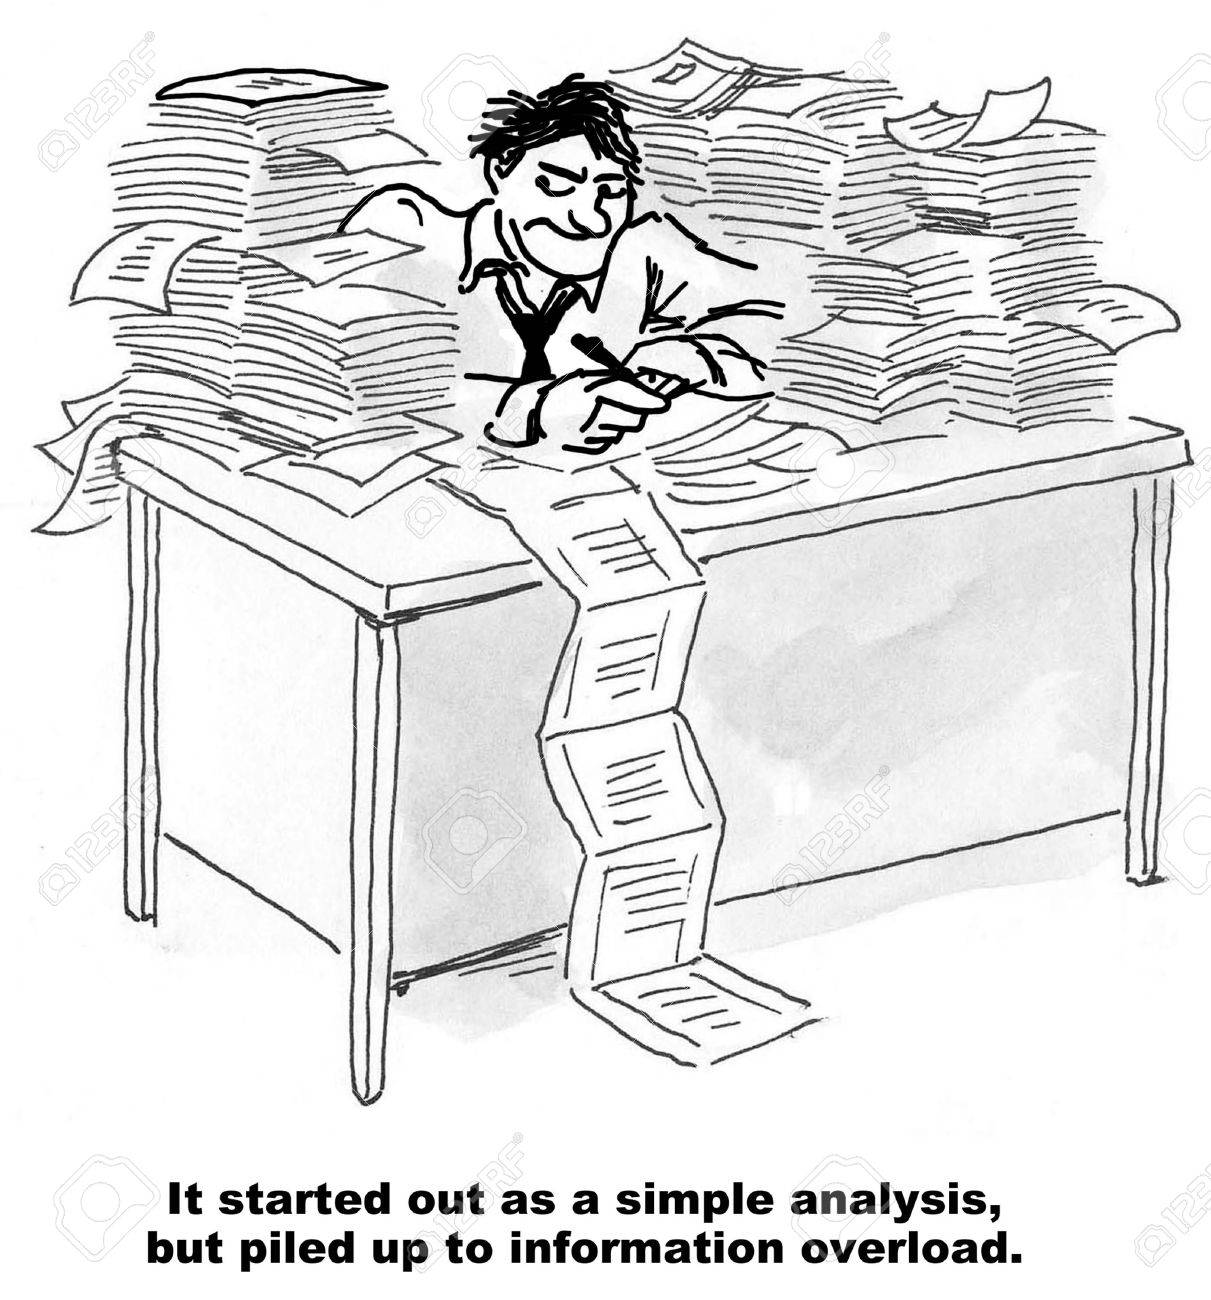 Cartoon of businessman at desk with lots of papers, it started out as a simple analysis but ended up as information overload. - 36332434